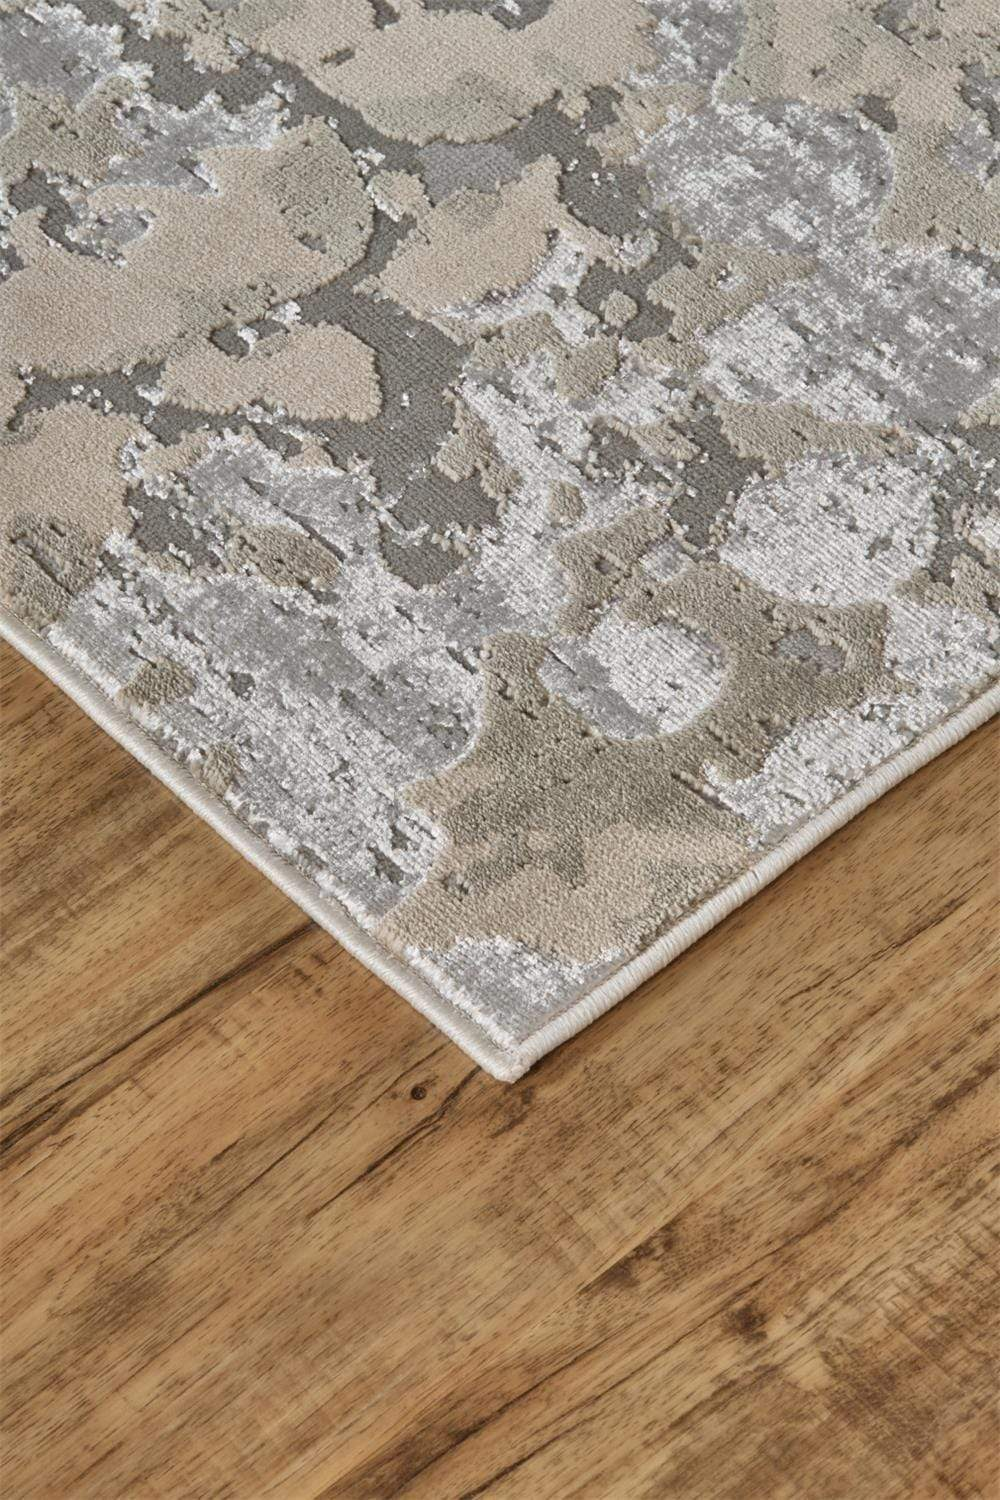 "Feizy Feizy Home Micah Rug - Silver/Gray 1' 8"" x 2' 10"" 6943336FSLVGRYP18"